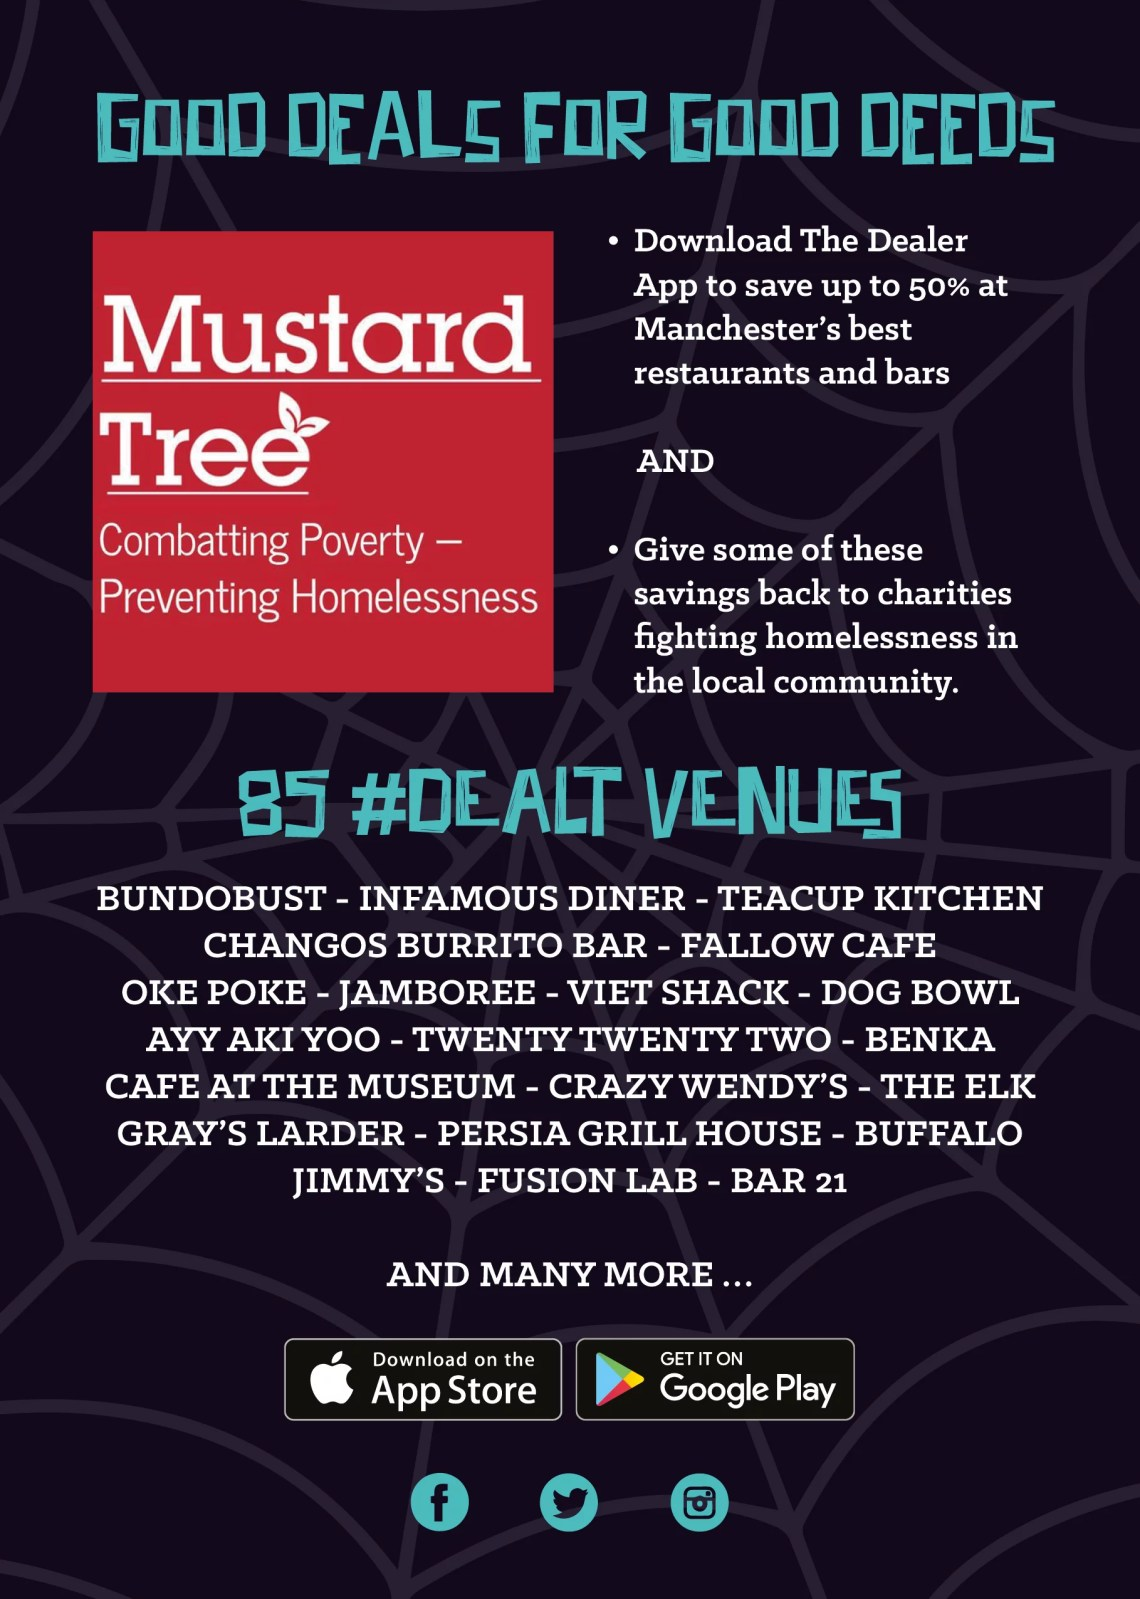 Charities and venues